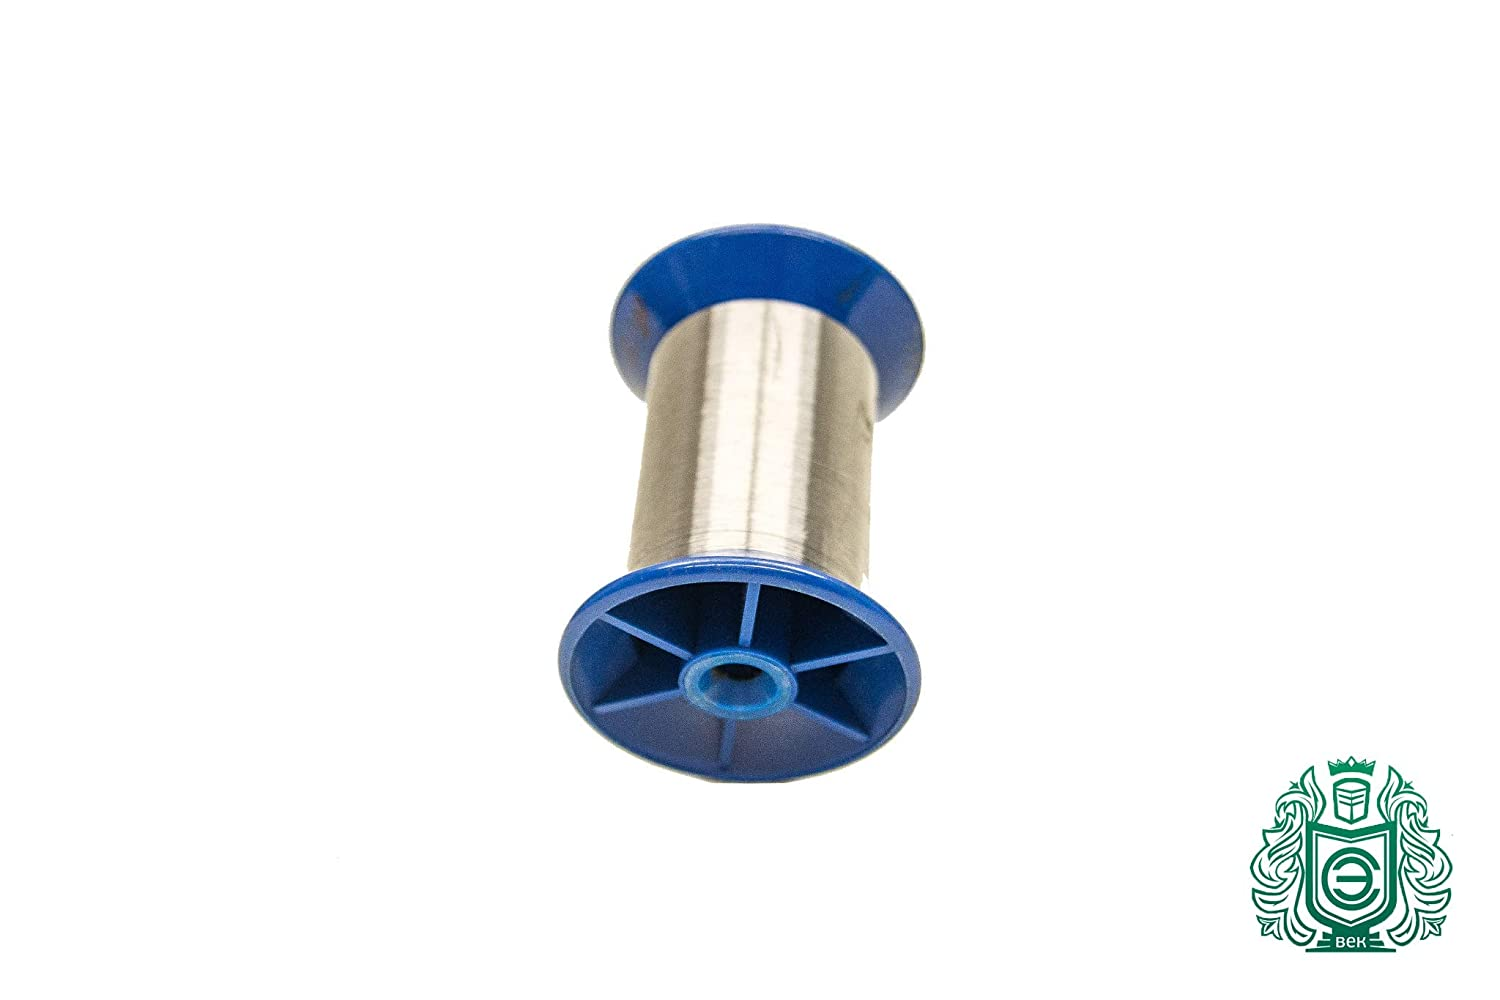 Aisi Stainless Steel Wire 0.75 6 mm Binding Wire 1.4301 Garden Wire 304 Craft Wire 2.5 304 50 Metres